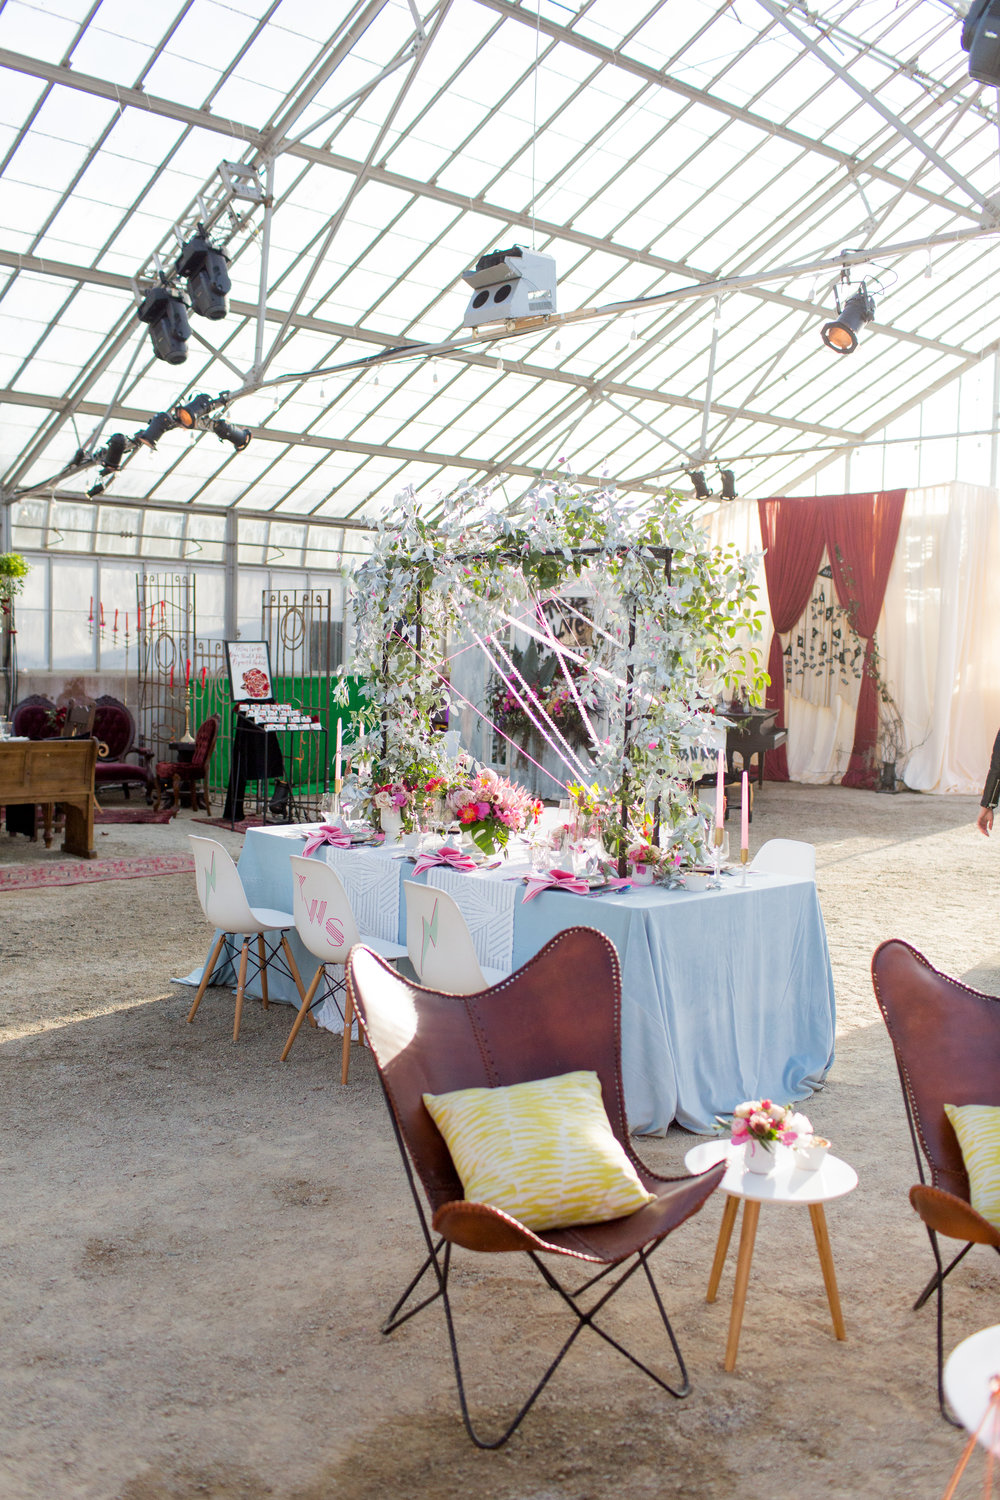 santabarbarawedding.com | The Jam Event | Orchid Farm | Party Pleasers